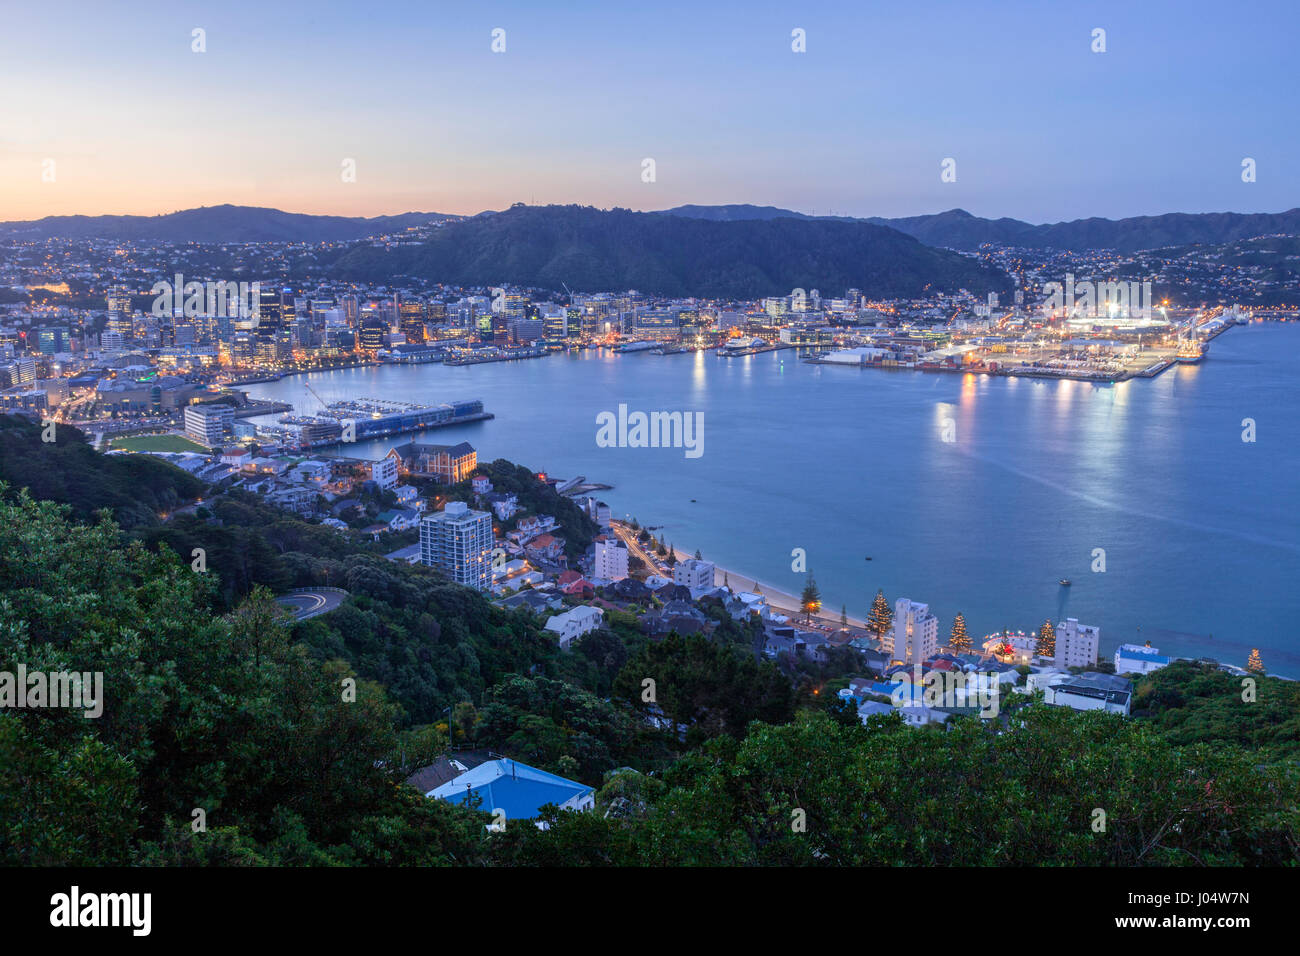 Wellington, New Zealand, from Mount Victoria, at twilight. - Stock Image